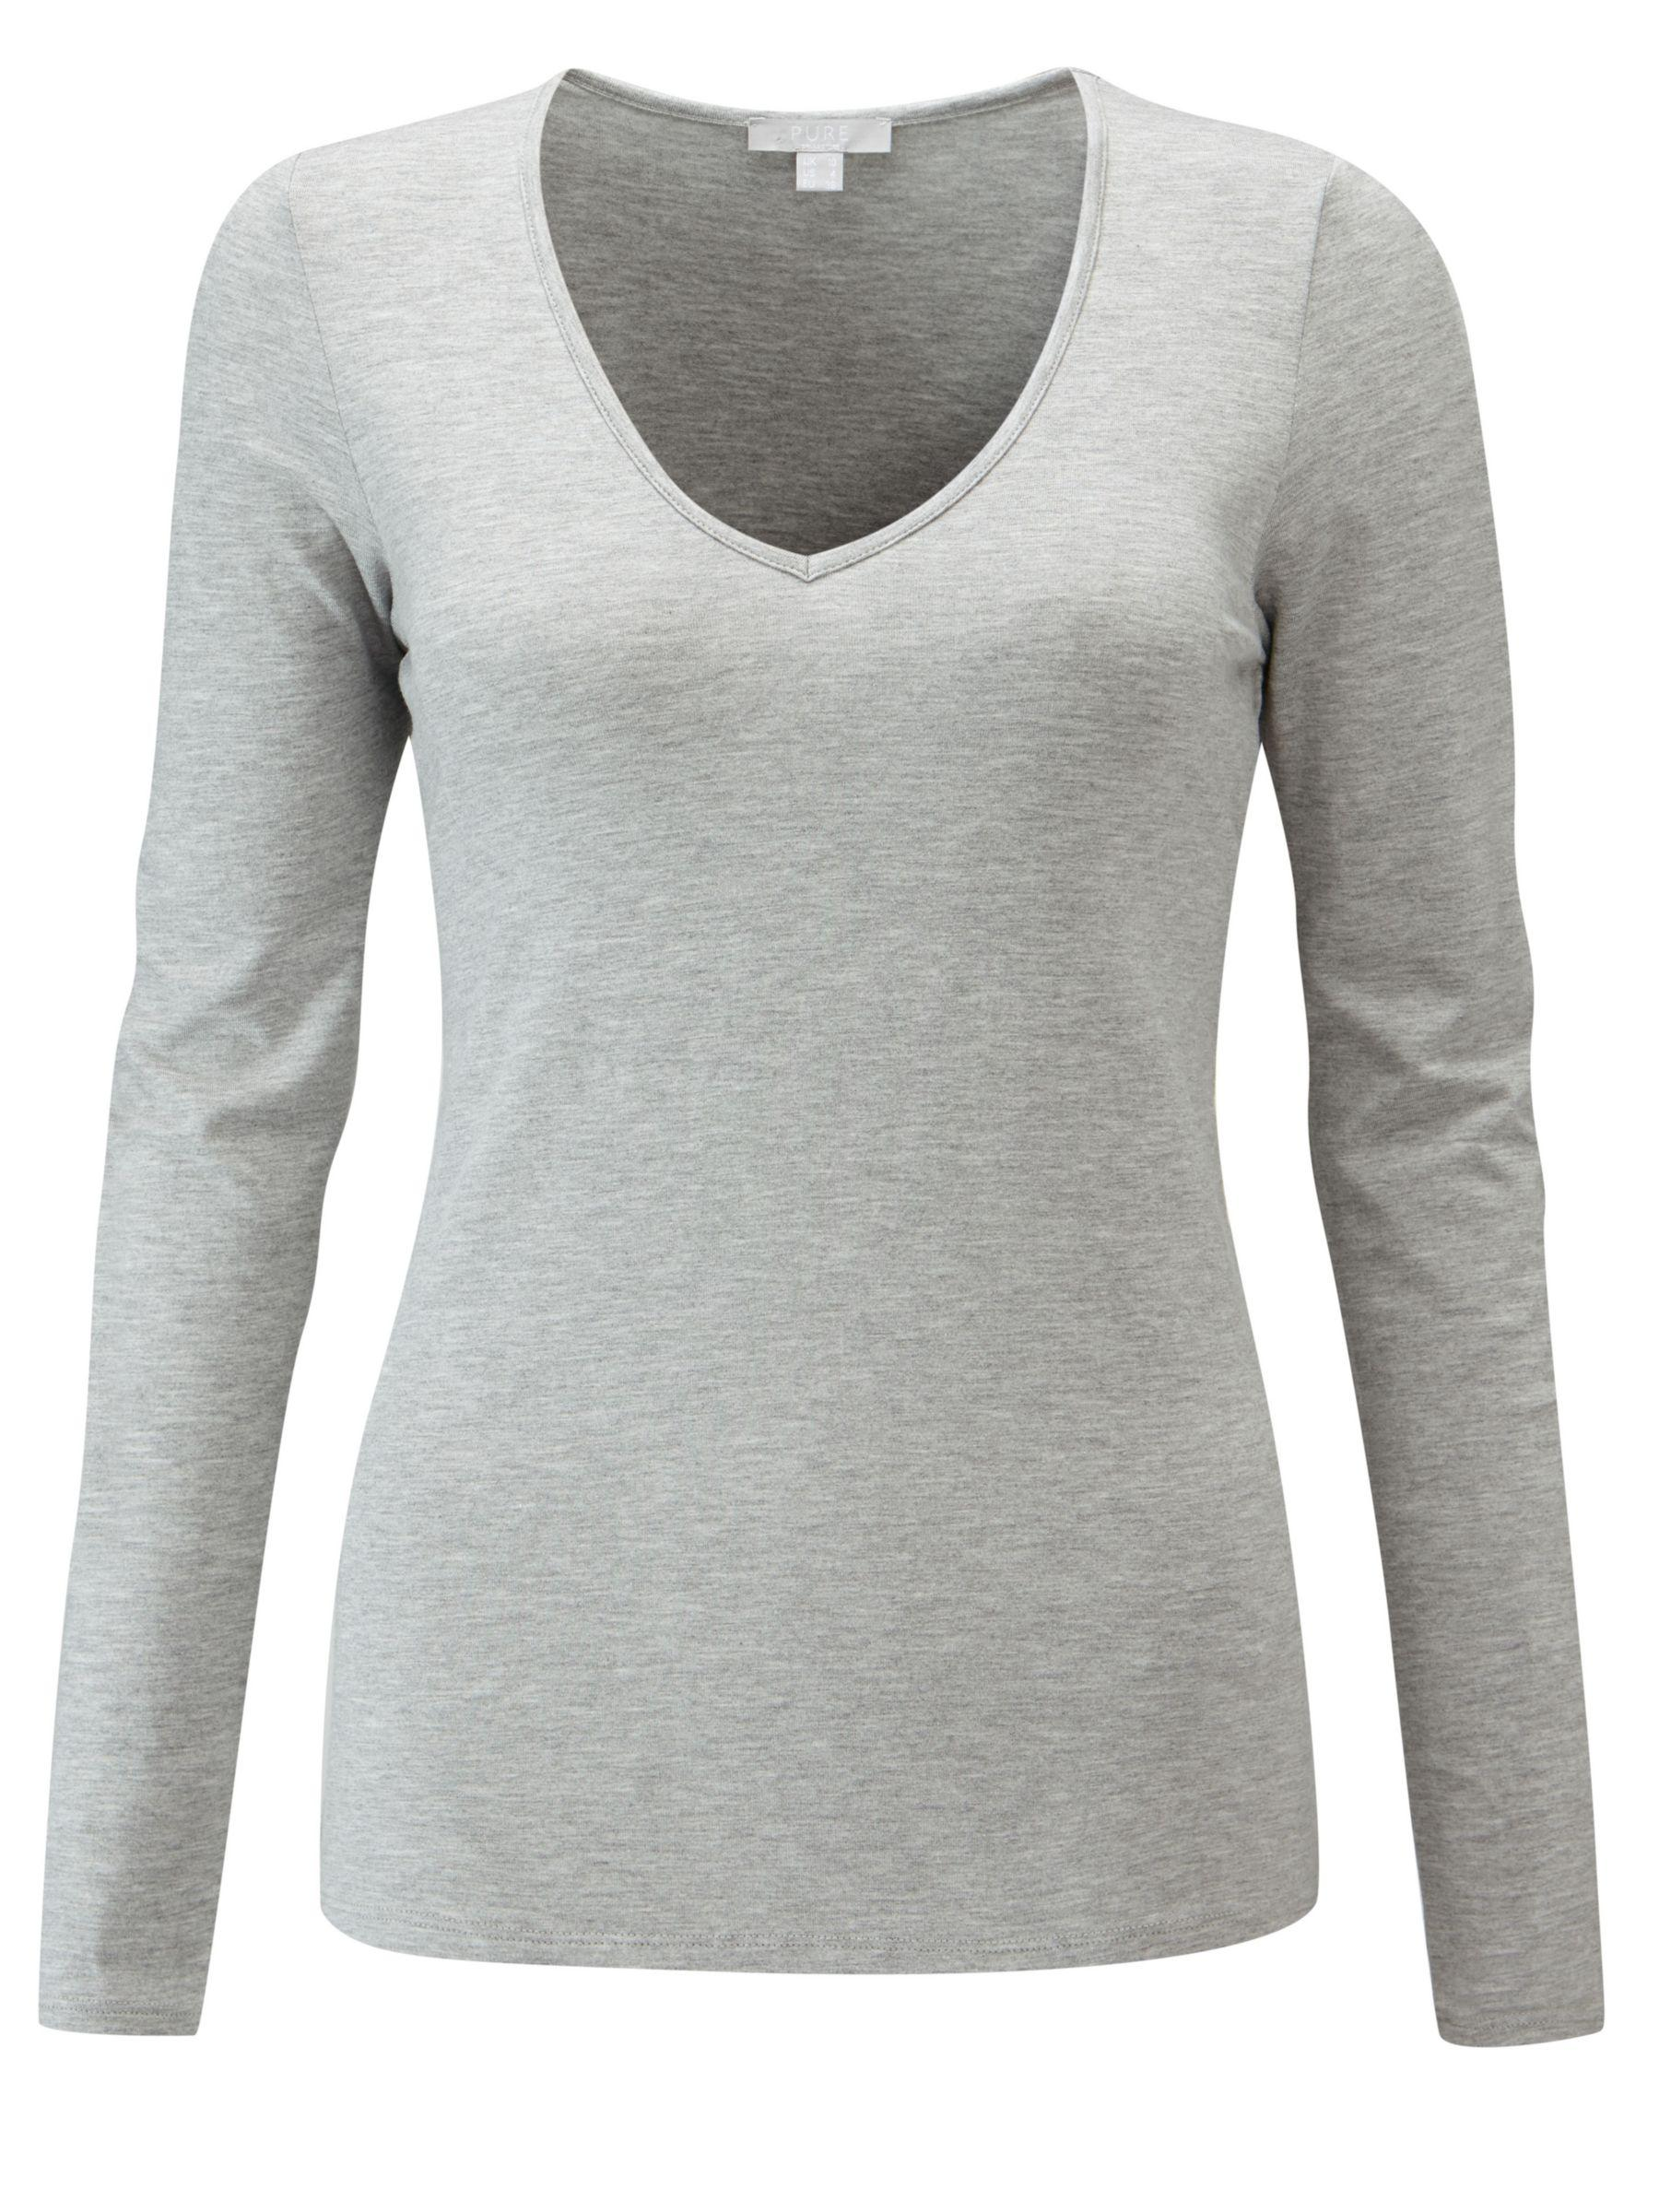 c713ef472d228c Pure Collection Soft Jersey V-neck Top in Gray - Lyst